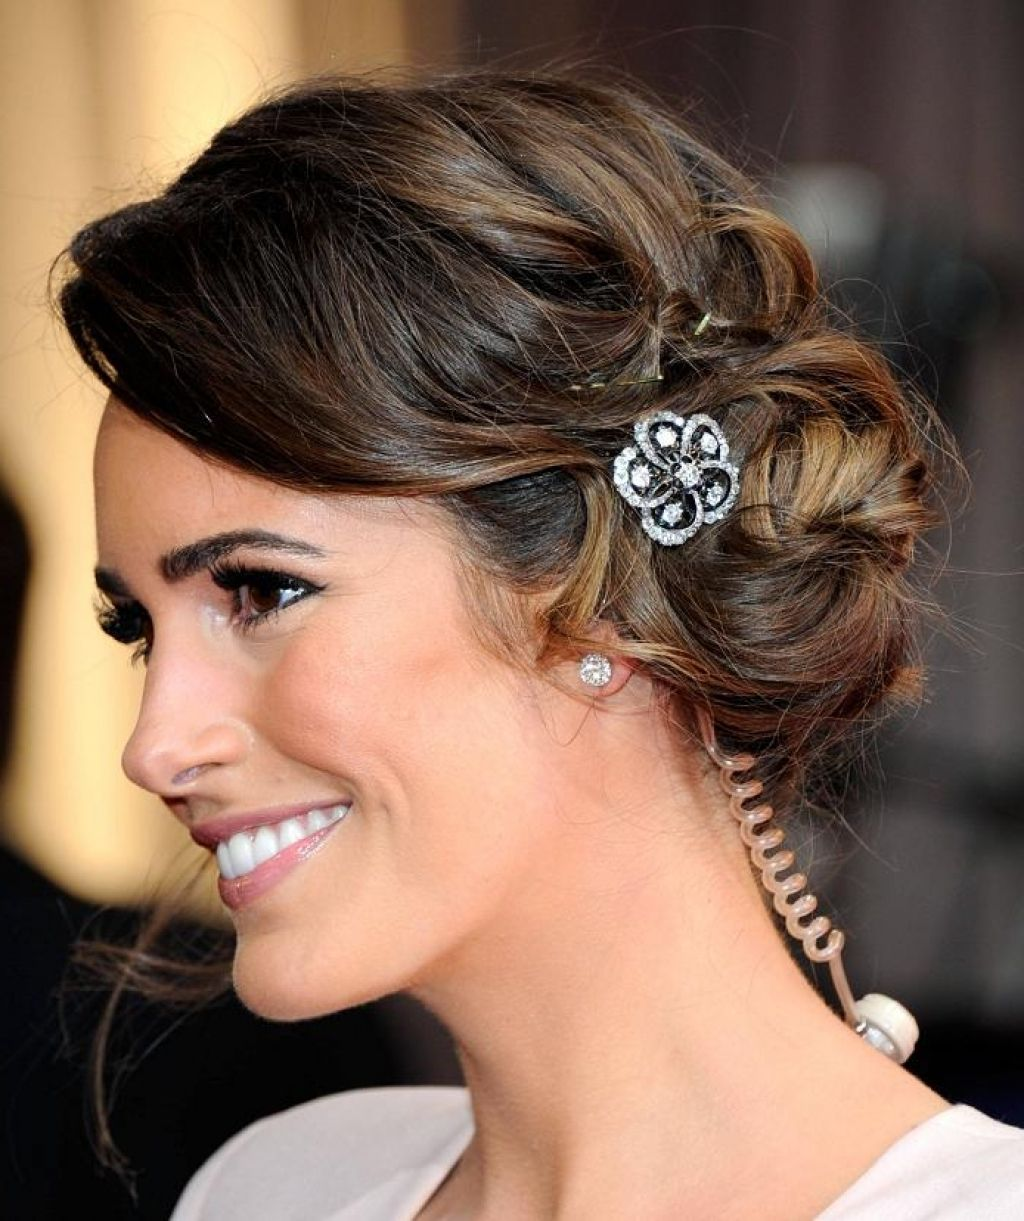 Awesome Wedding Hairstyle Ideas For Guests Hairzstyle Short Hair Hairstyles